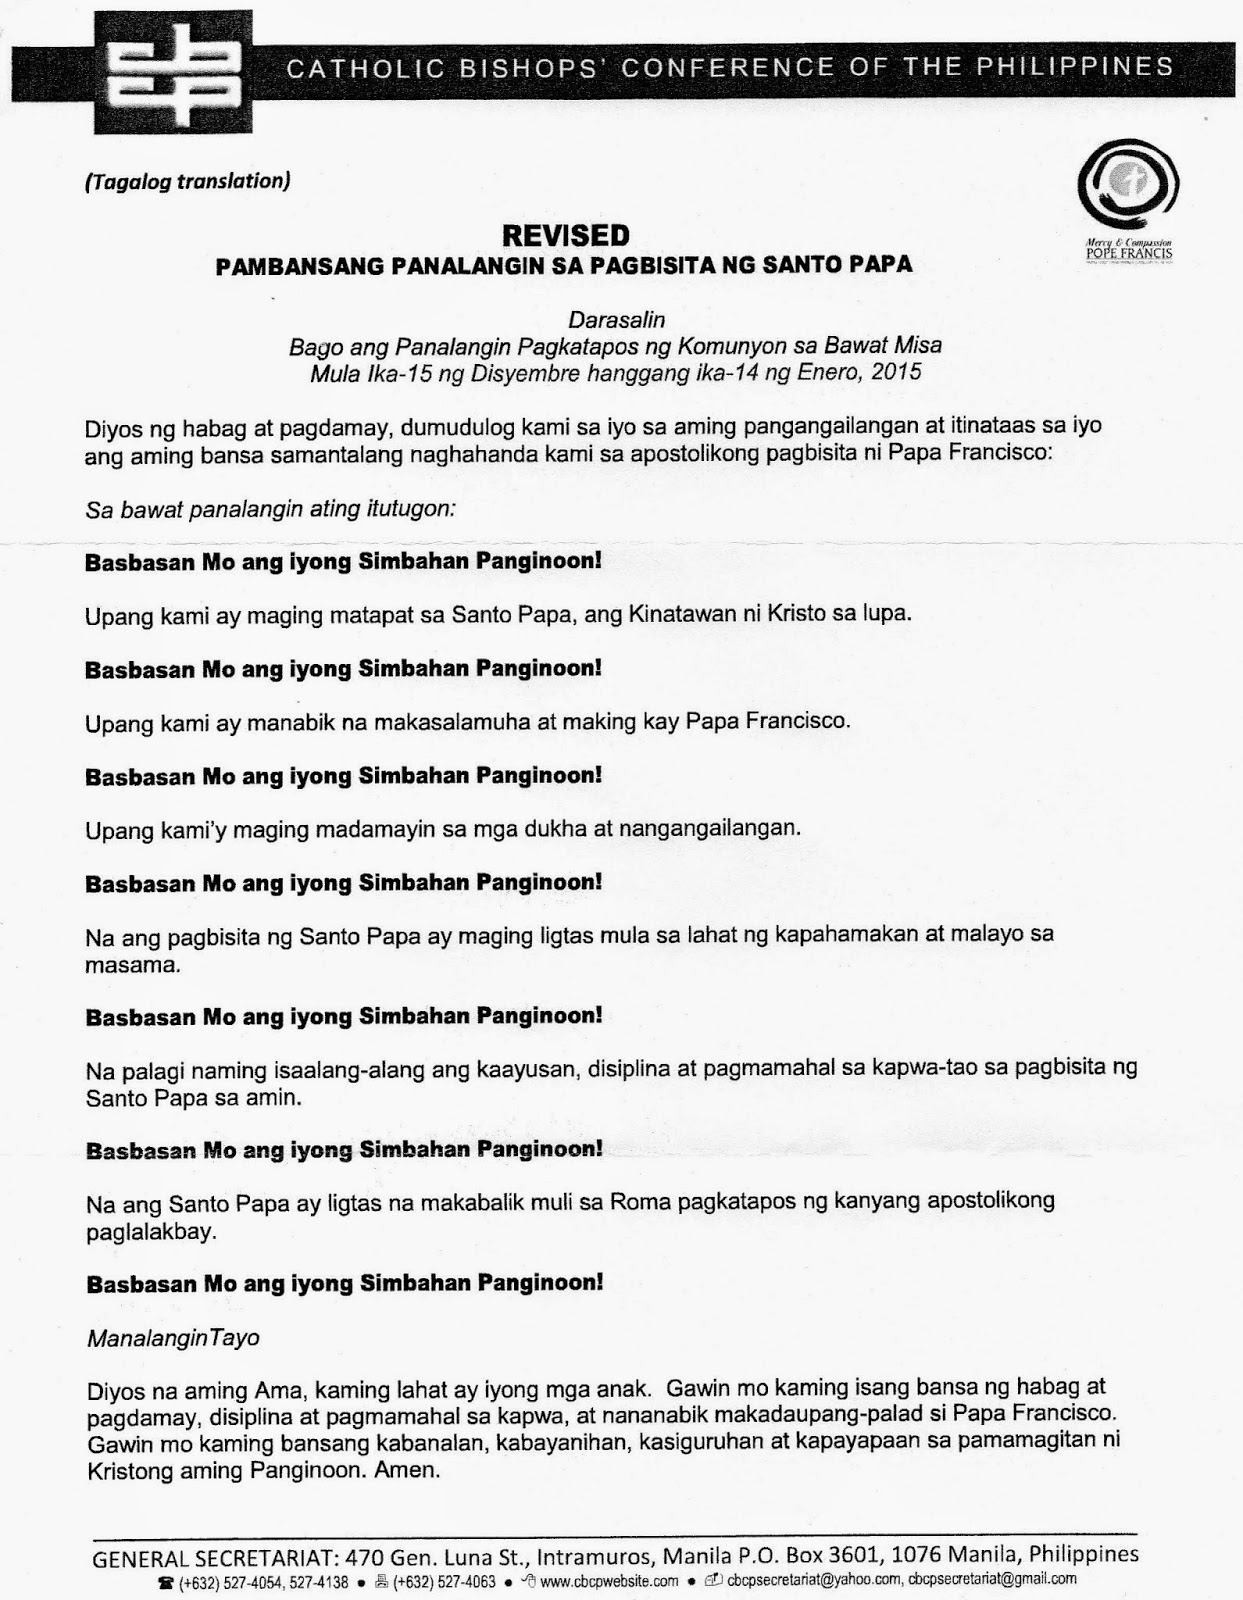 Diocese of pasig revised national prayers for the papal visit you may download the jpeg image of the revised papal visit prayer in english and tagalog which will be prayed in all parishes before the post communion altavistaventures Gallery